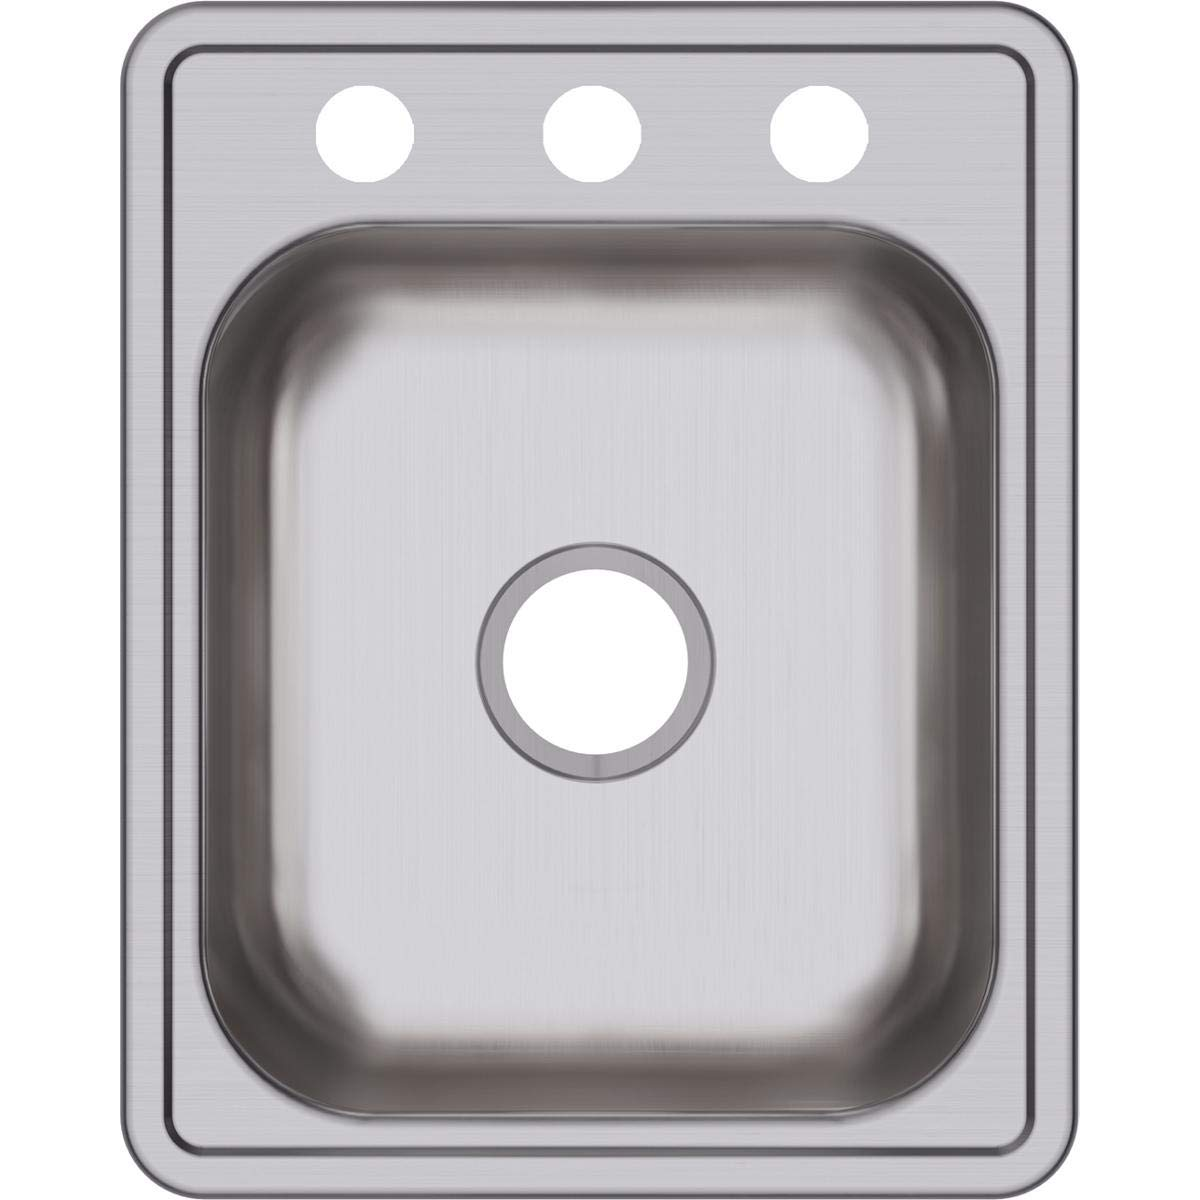 Dayton D117213 Single Bowl Top Mount Stainless Steel Bar Sink by Elkay